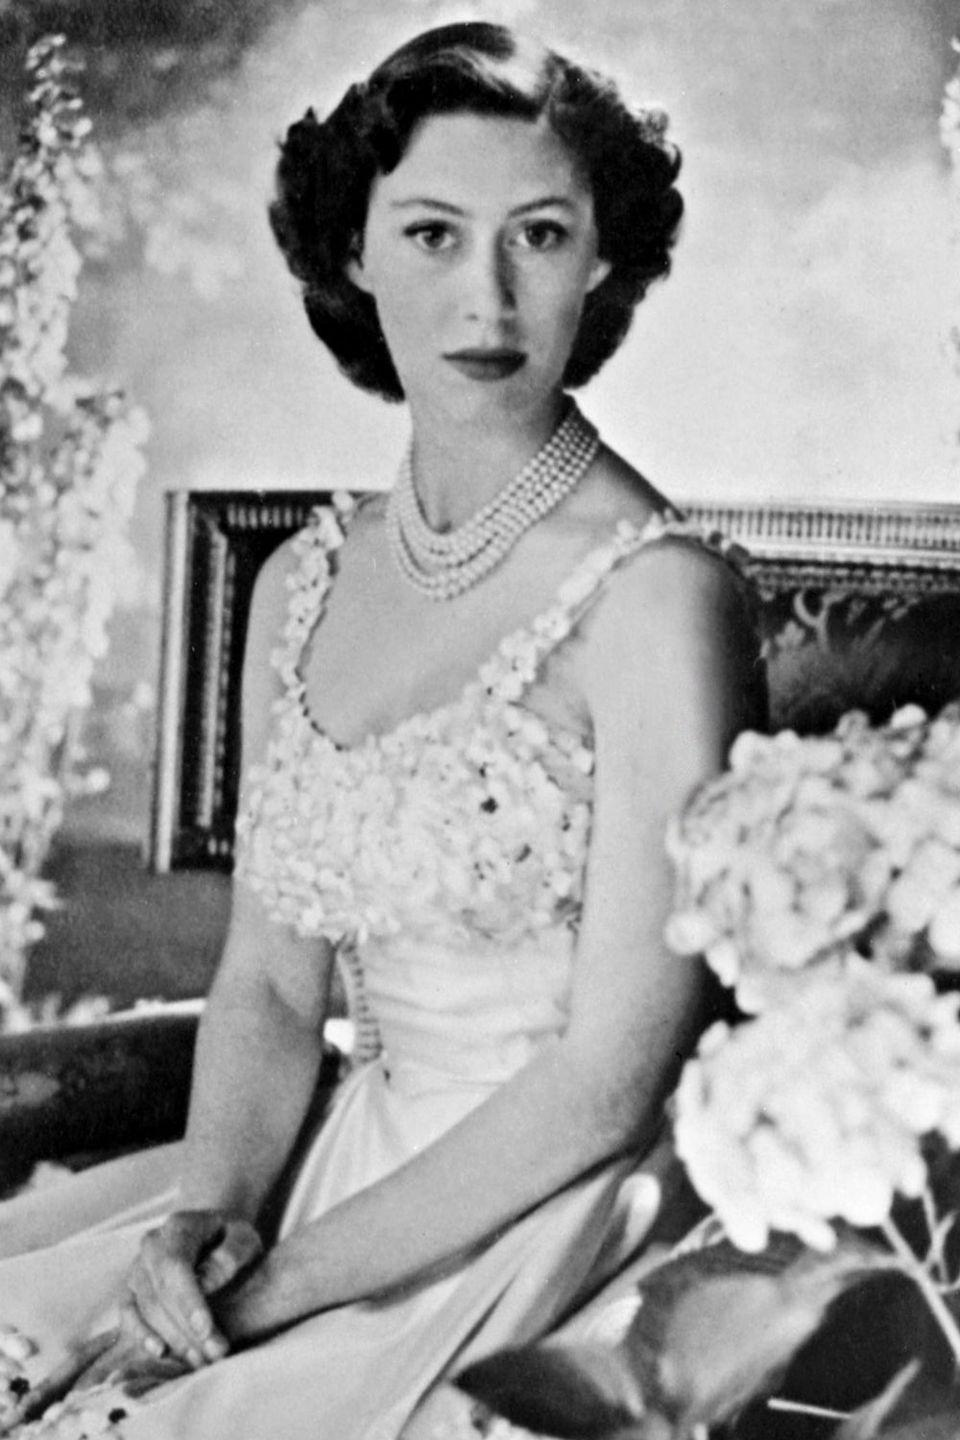 <p>Princess Margaret poses for a portrait in the 1940s. </p>